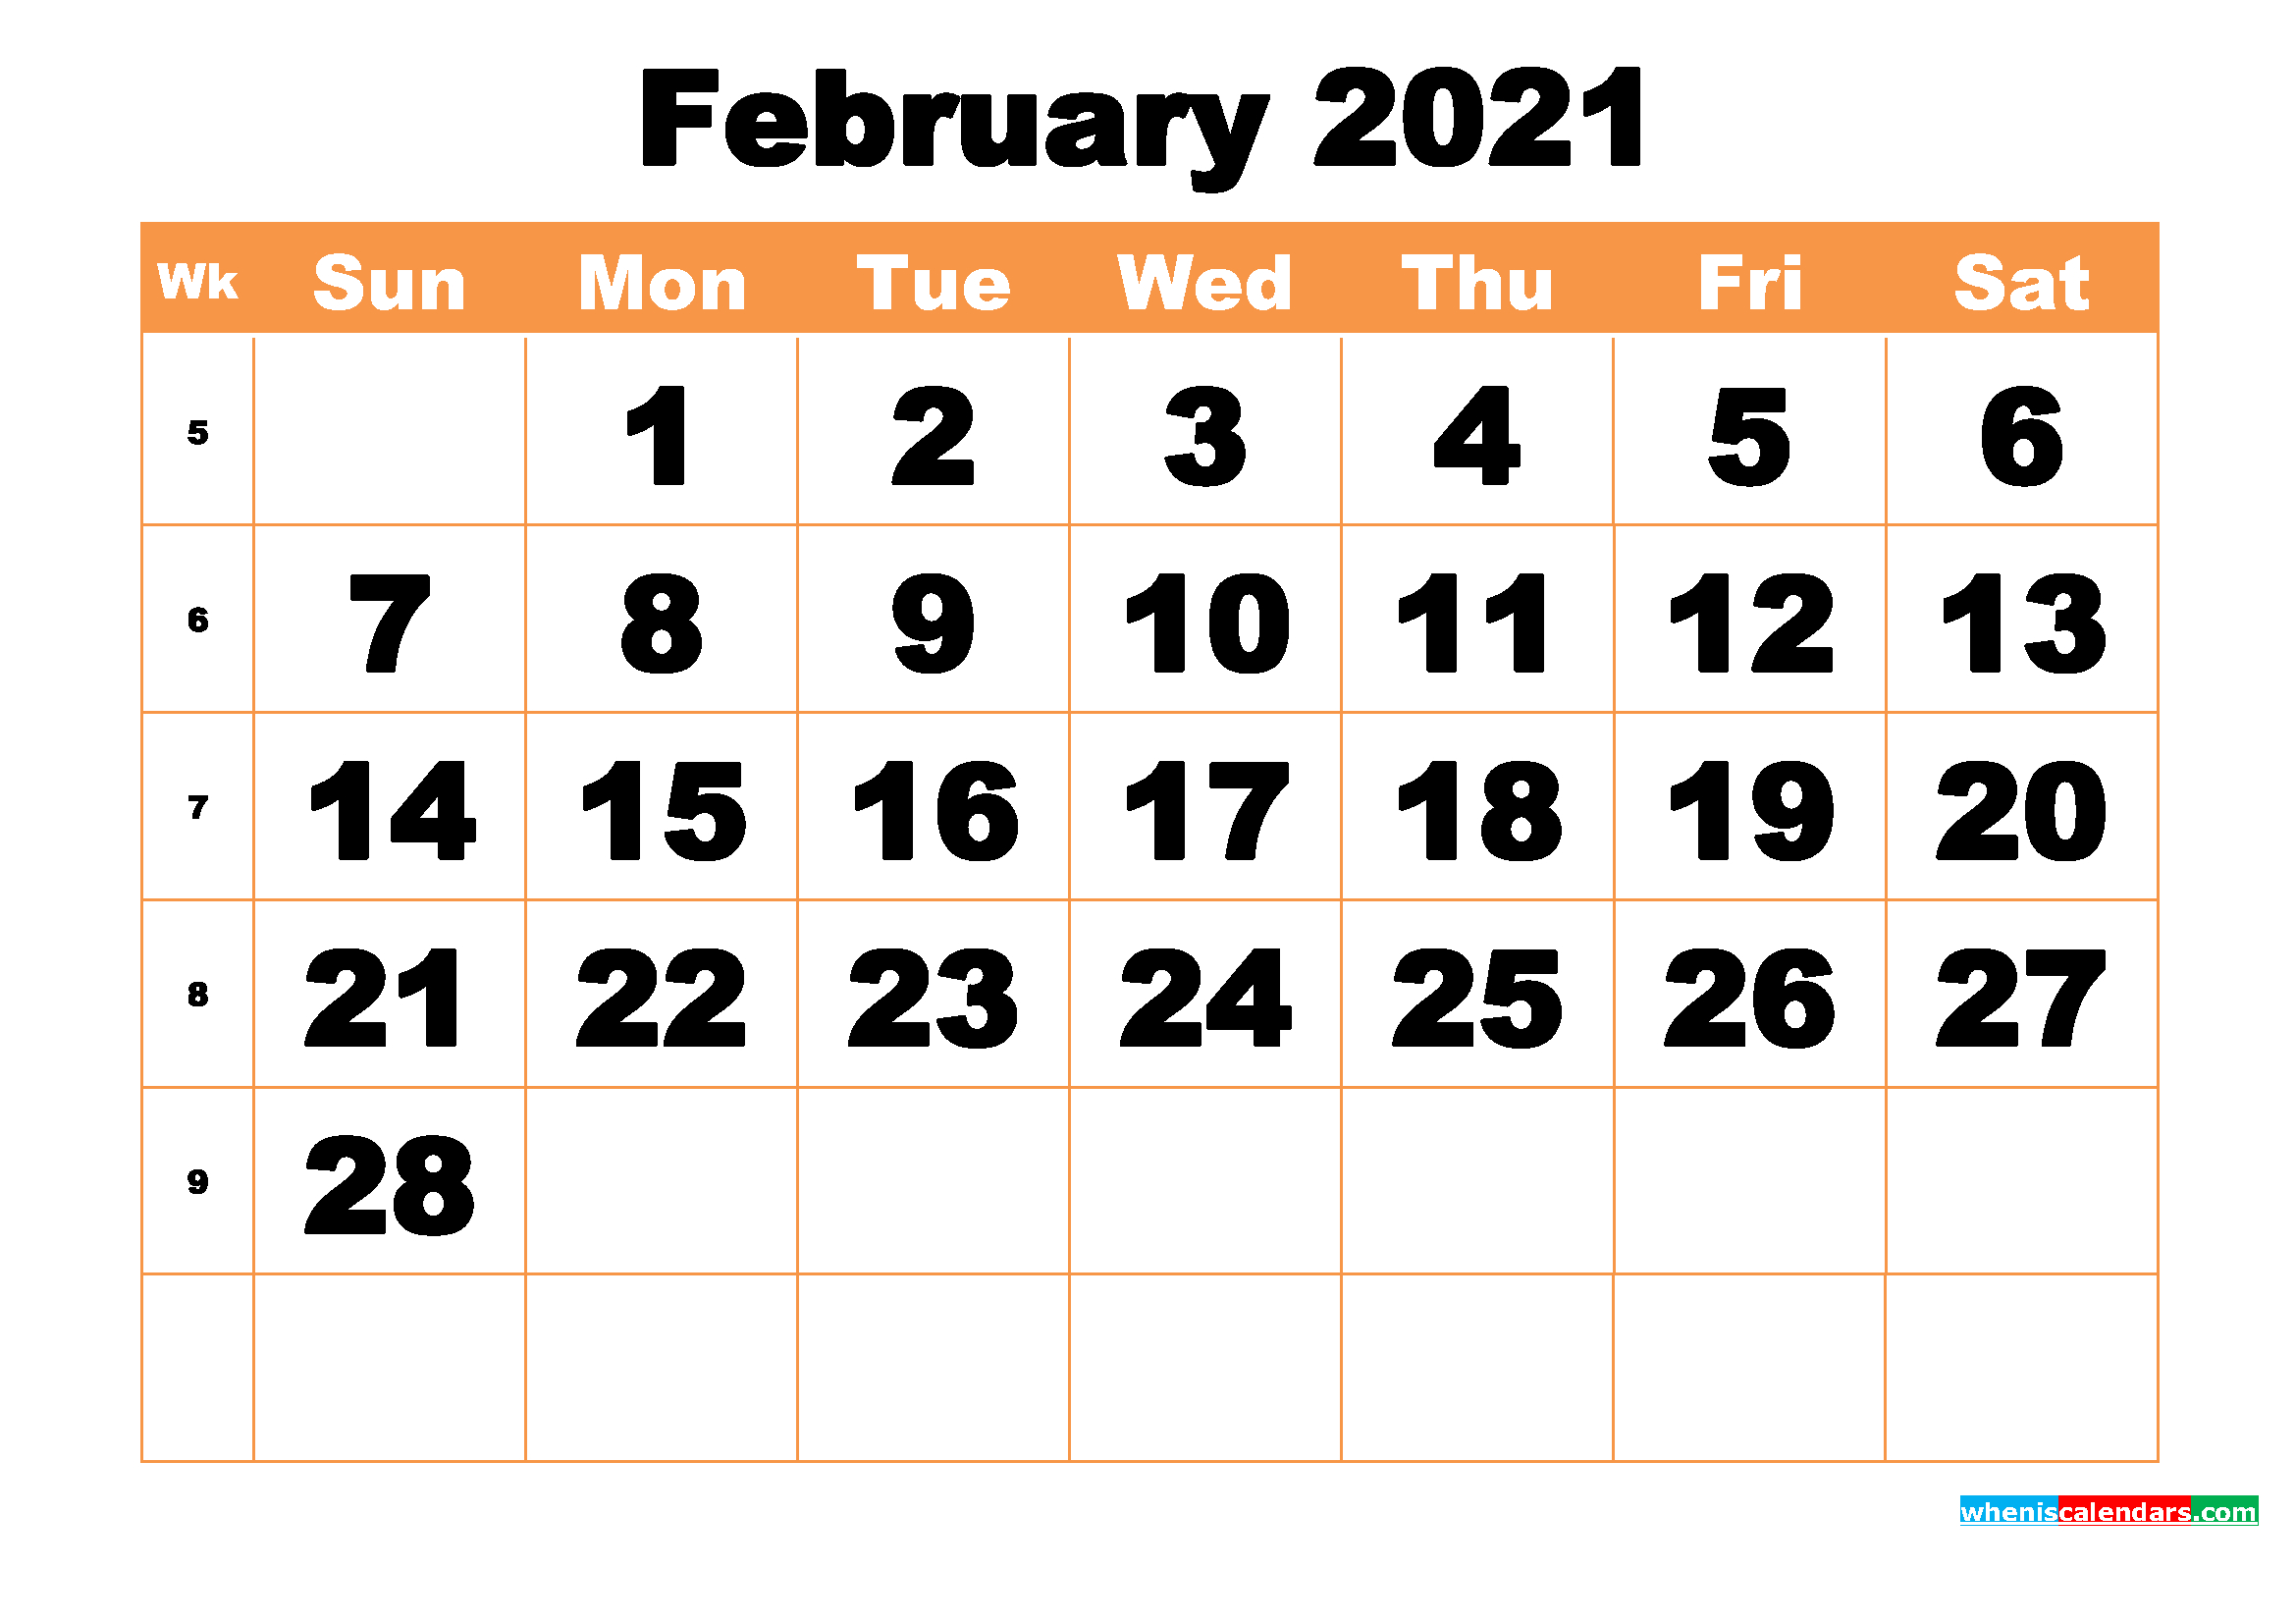 2021 Calendar February with Large Bold Printable Calendar